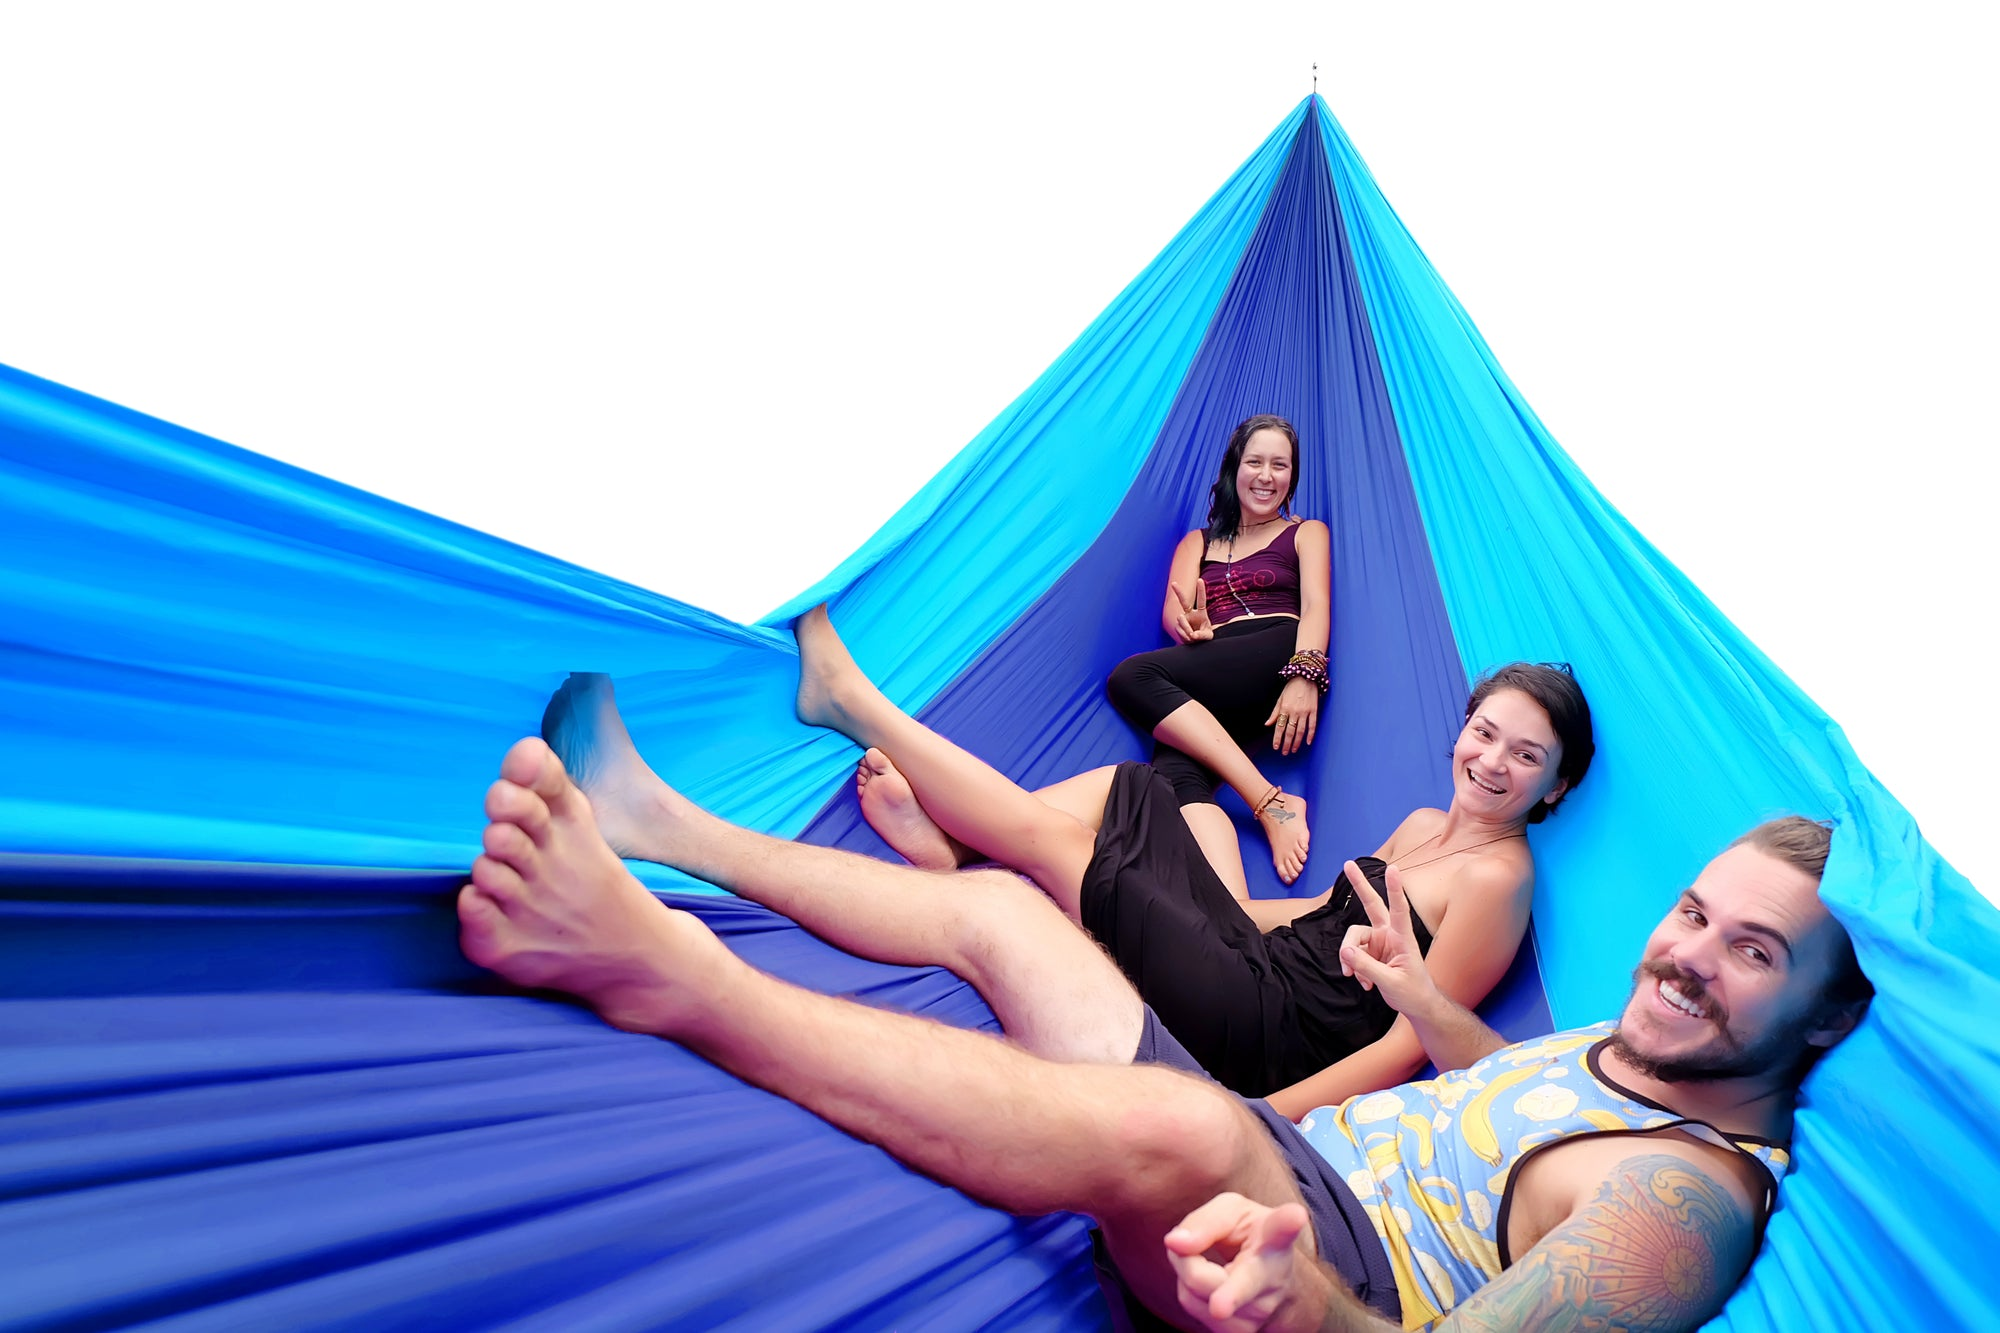 The Largest jumbo hammock on the market!